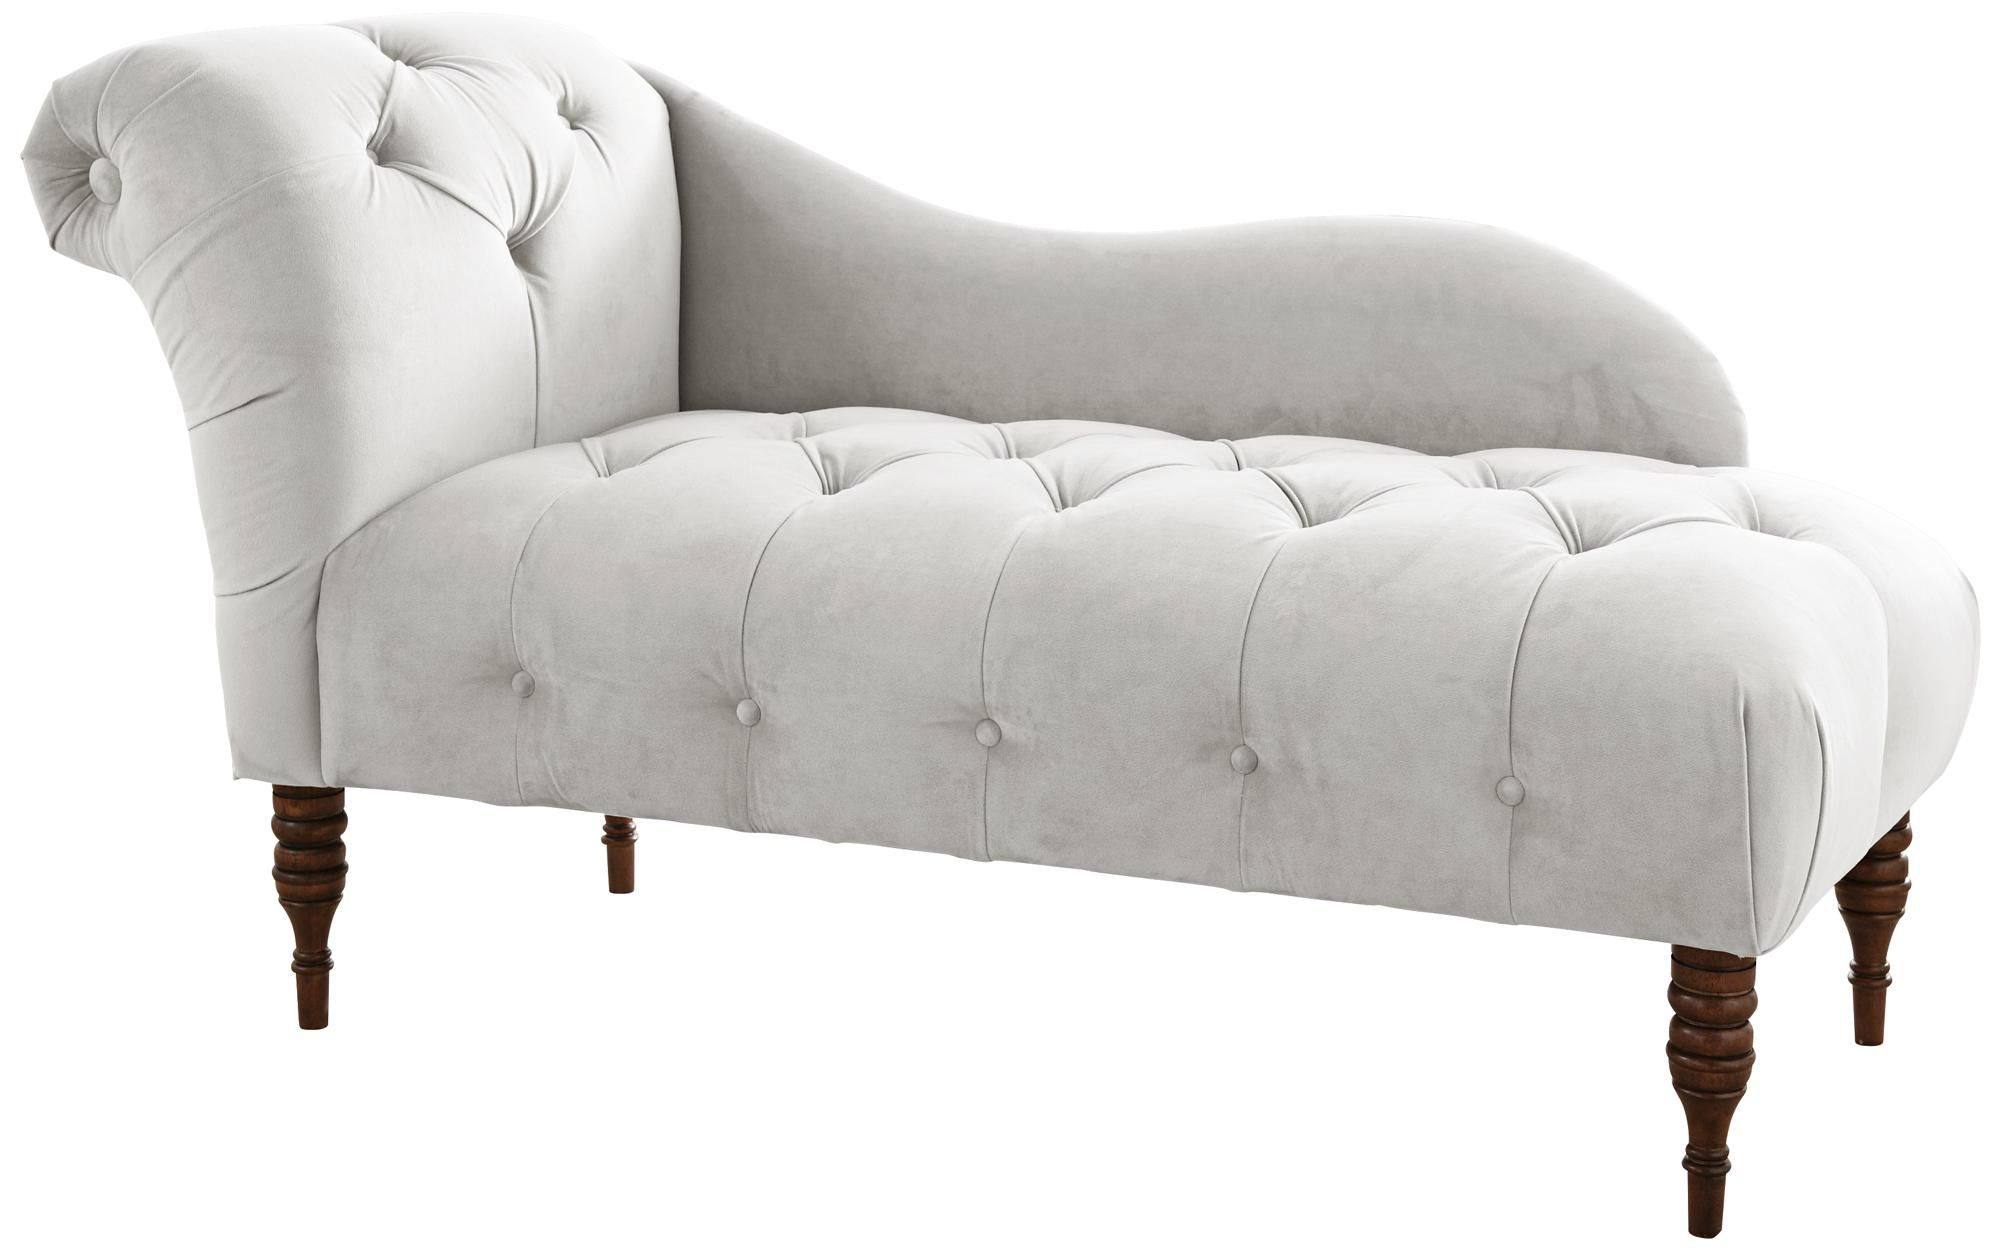 White Velvet Upholstered Chaise Lounge Chair Tufted